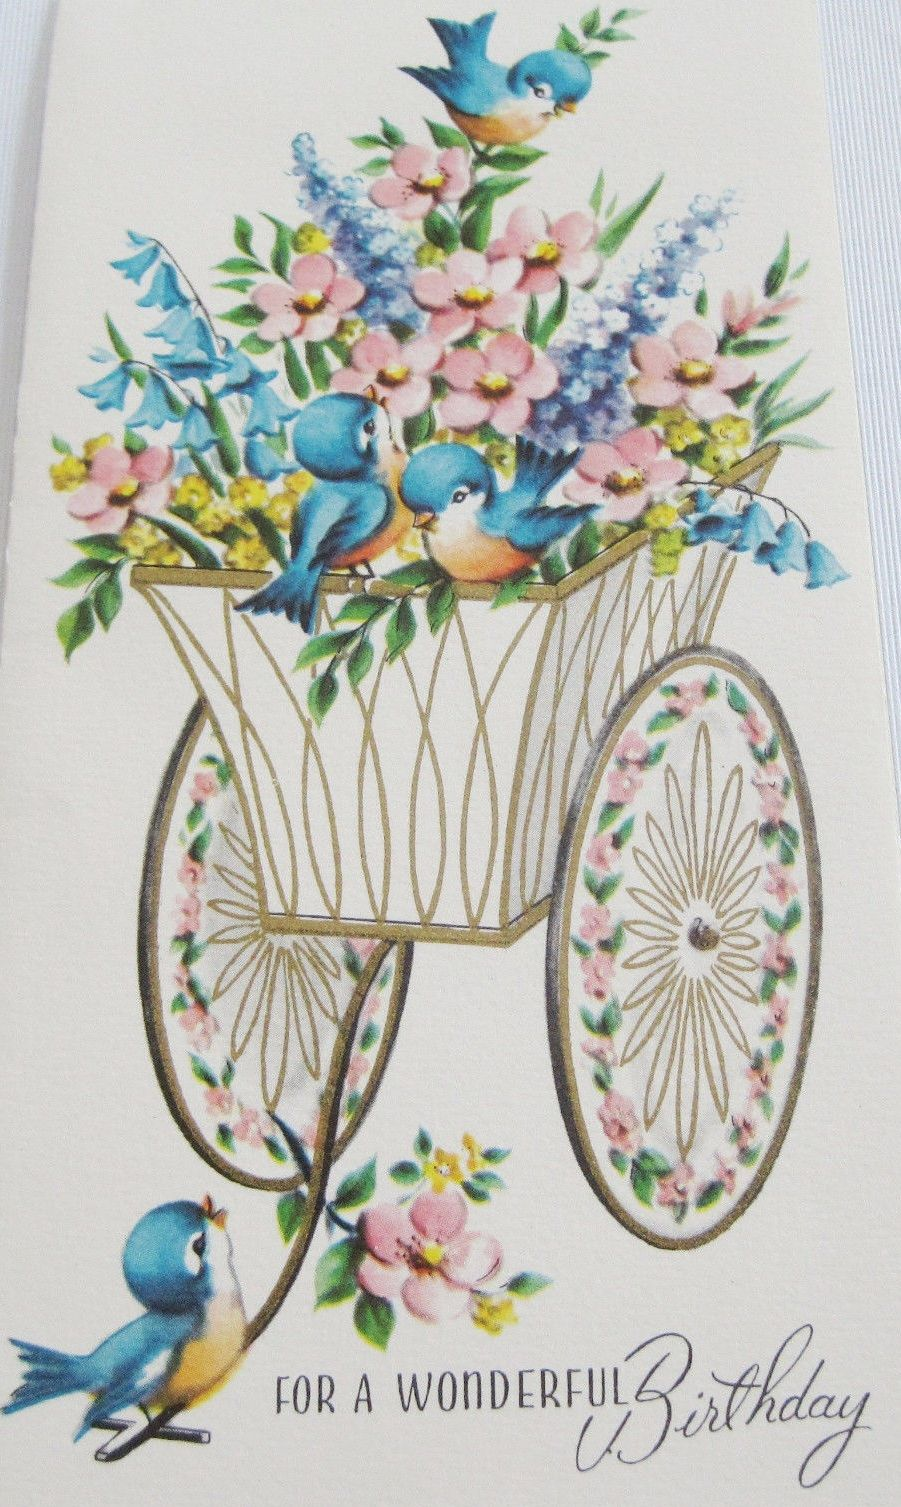 Pin by debbie bailey ray on art vintage cards ads and artwork happy birthday cards birthday greetings animal cards nice picture vintage greeting cards vintage holiday bluebirds vintage wrapping paper vintage kristyandbryce Image collections